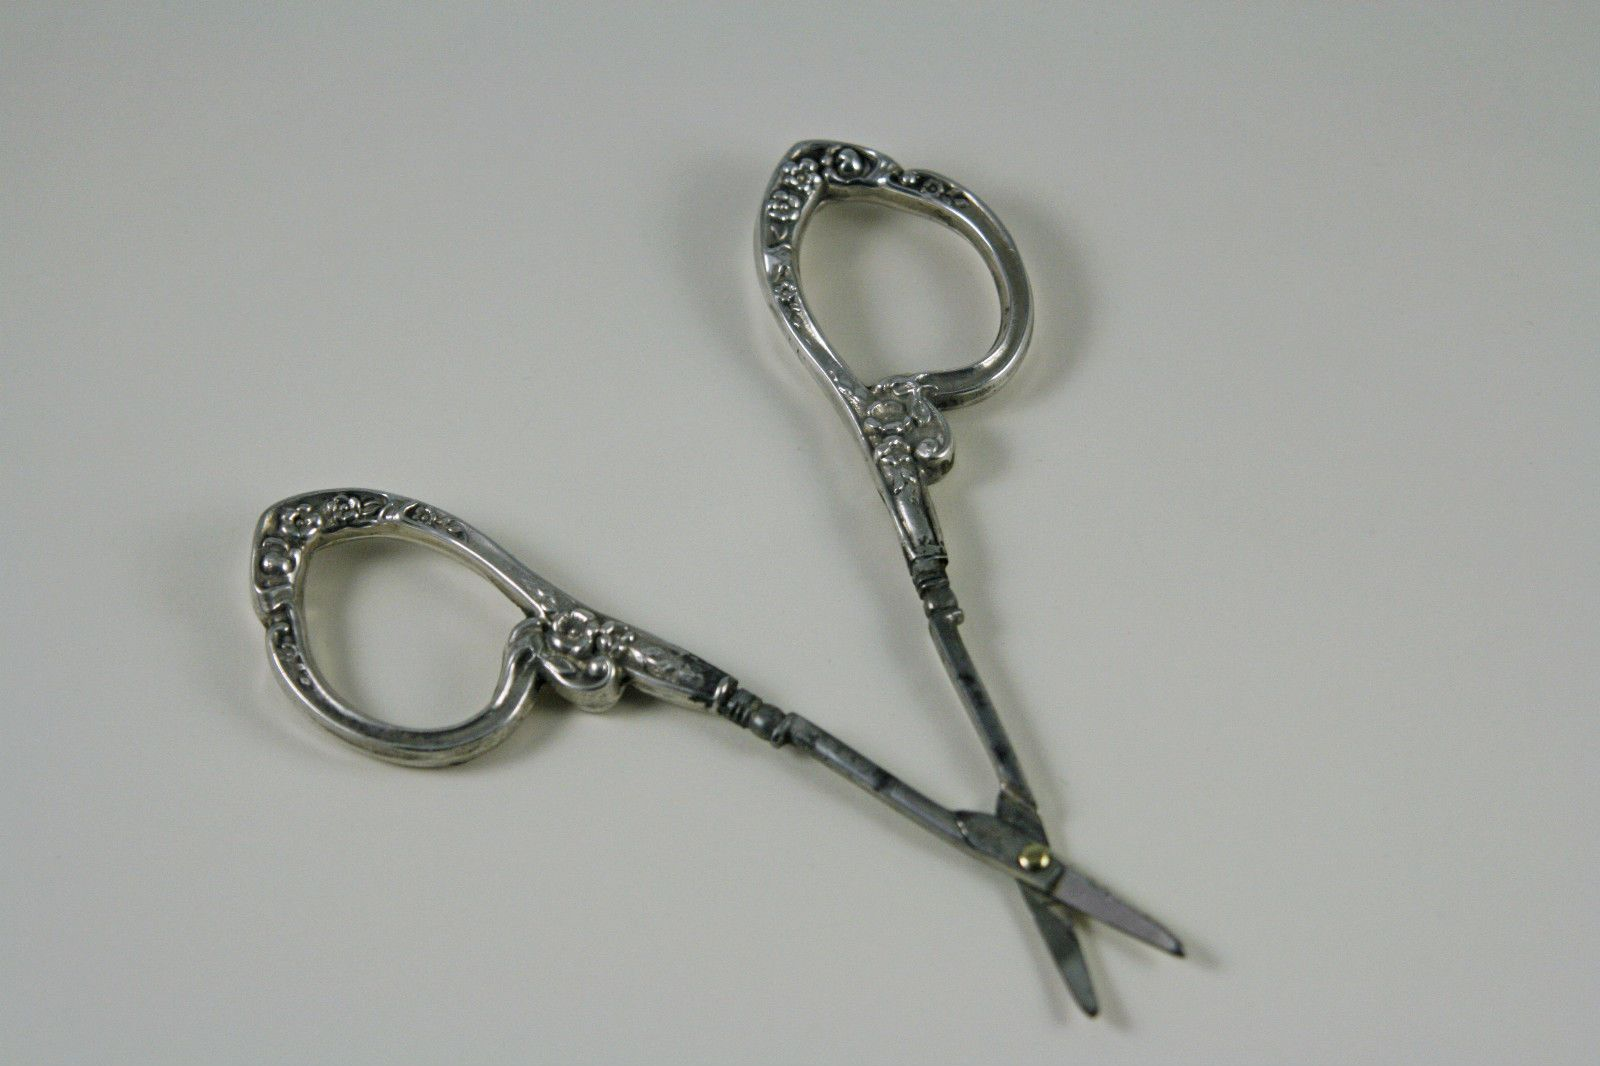 Antique Sterling Handled Embroidery Scissors Griffon